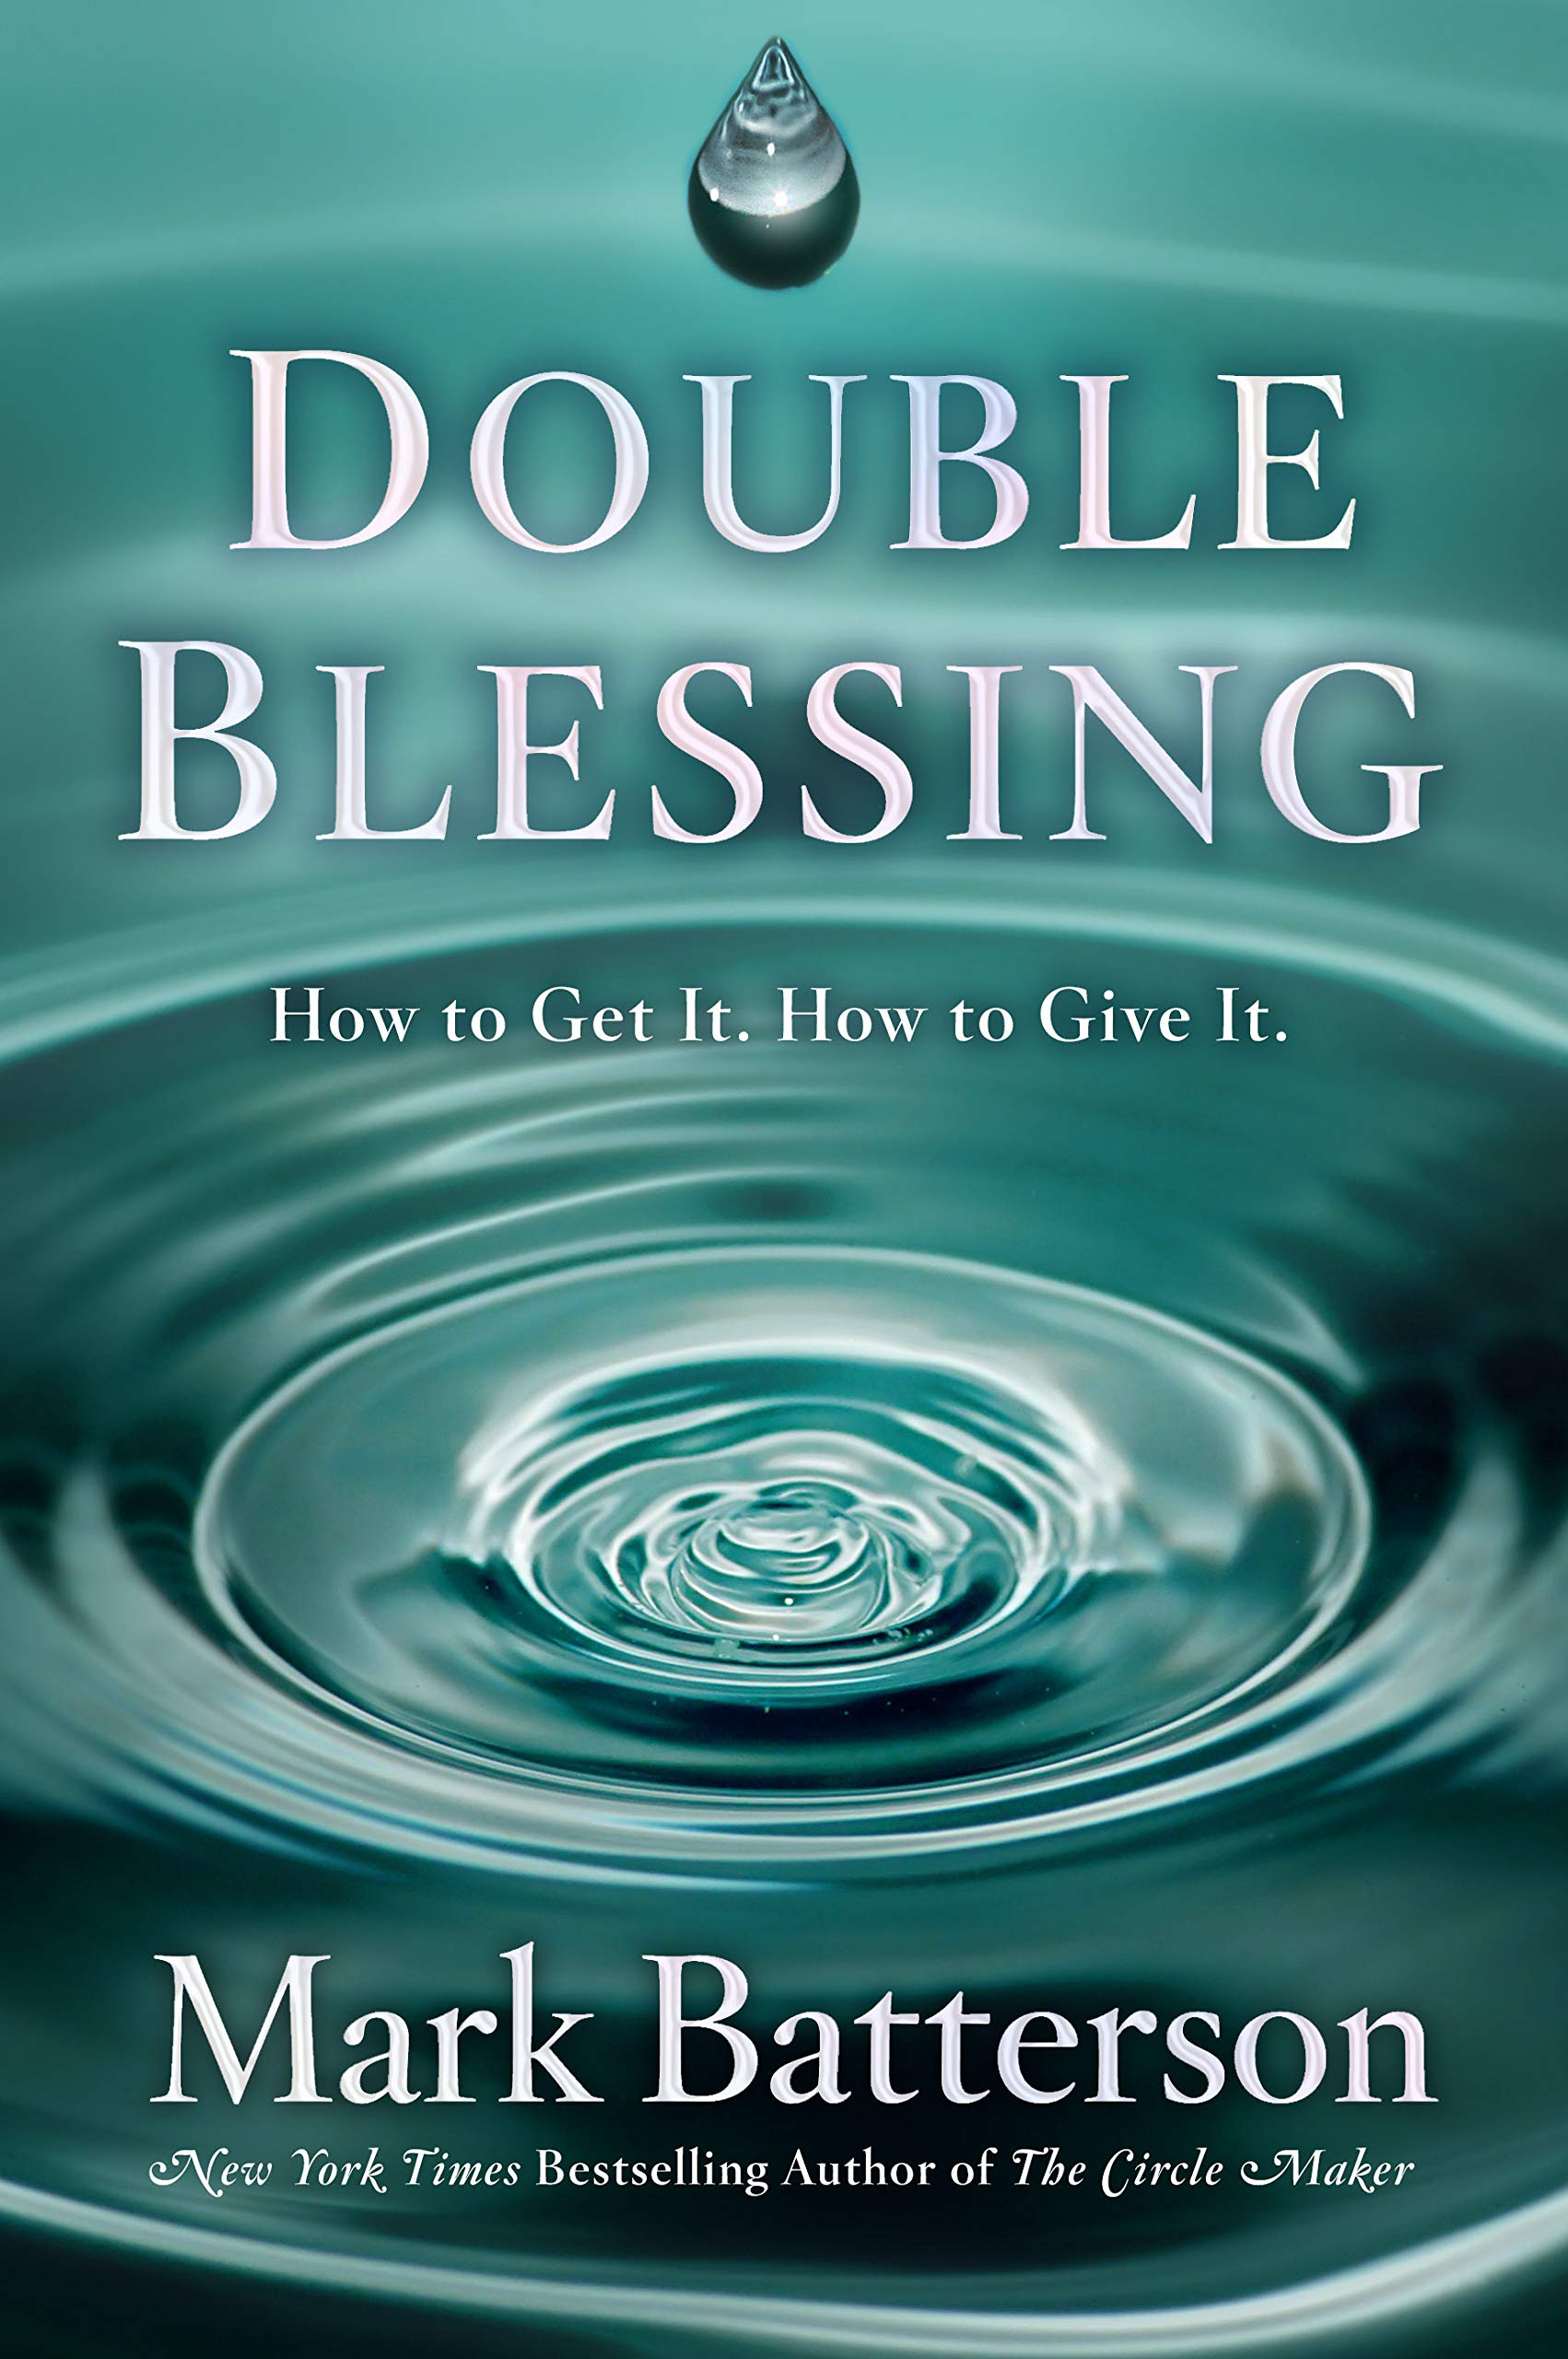 Double Blessing: How to Get It. How to Give It. by WaterBrook Press